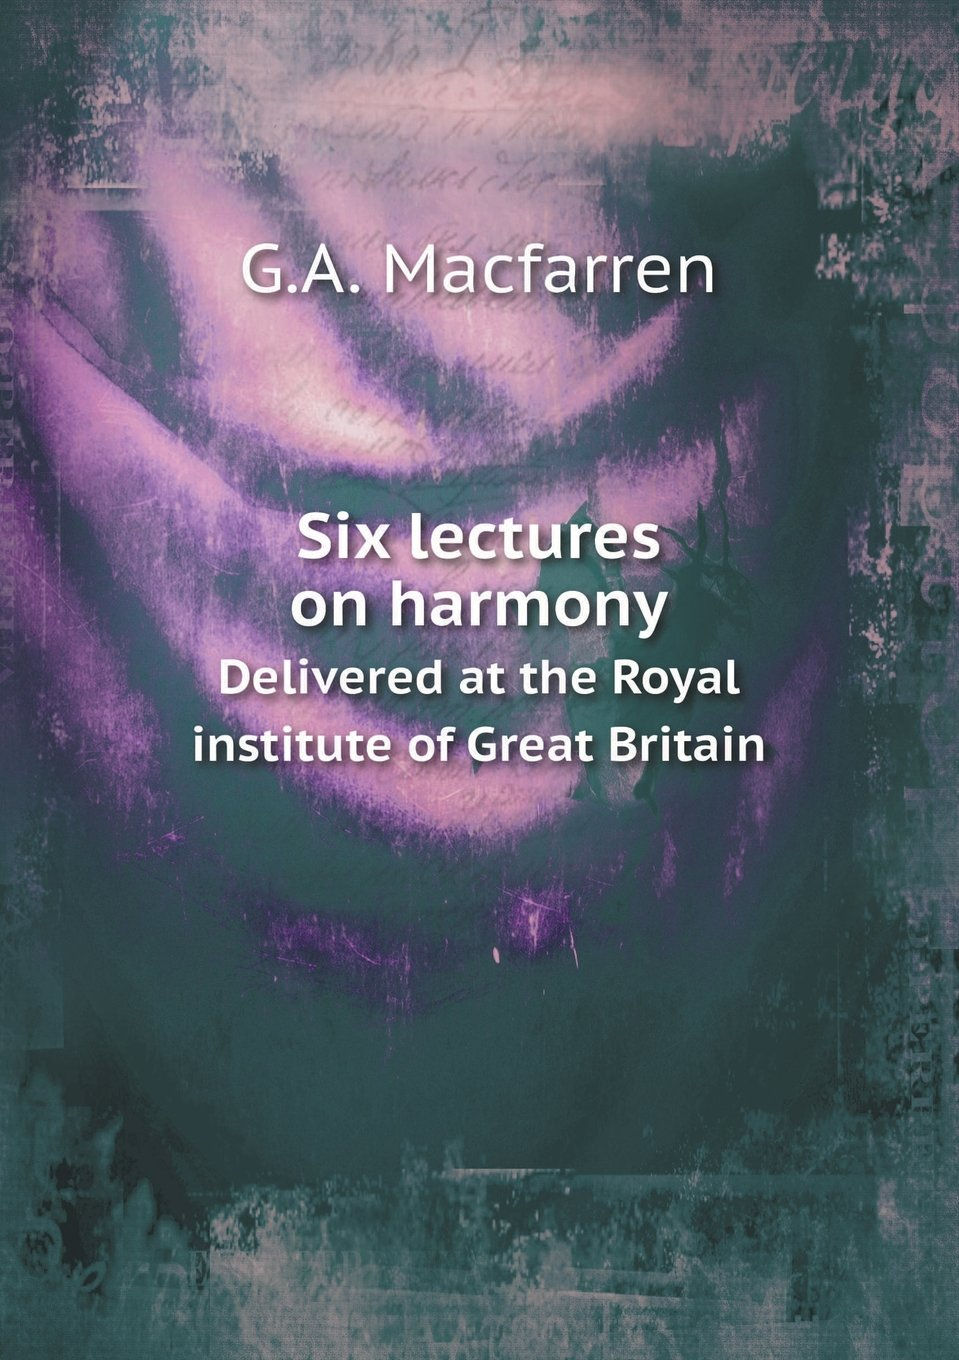 Six lectures on harmony Delivered at the Royal institute of Great Britain ebook